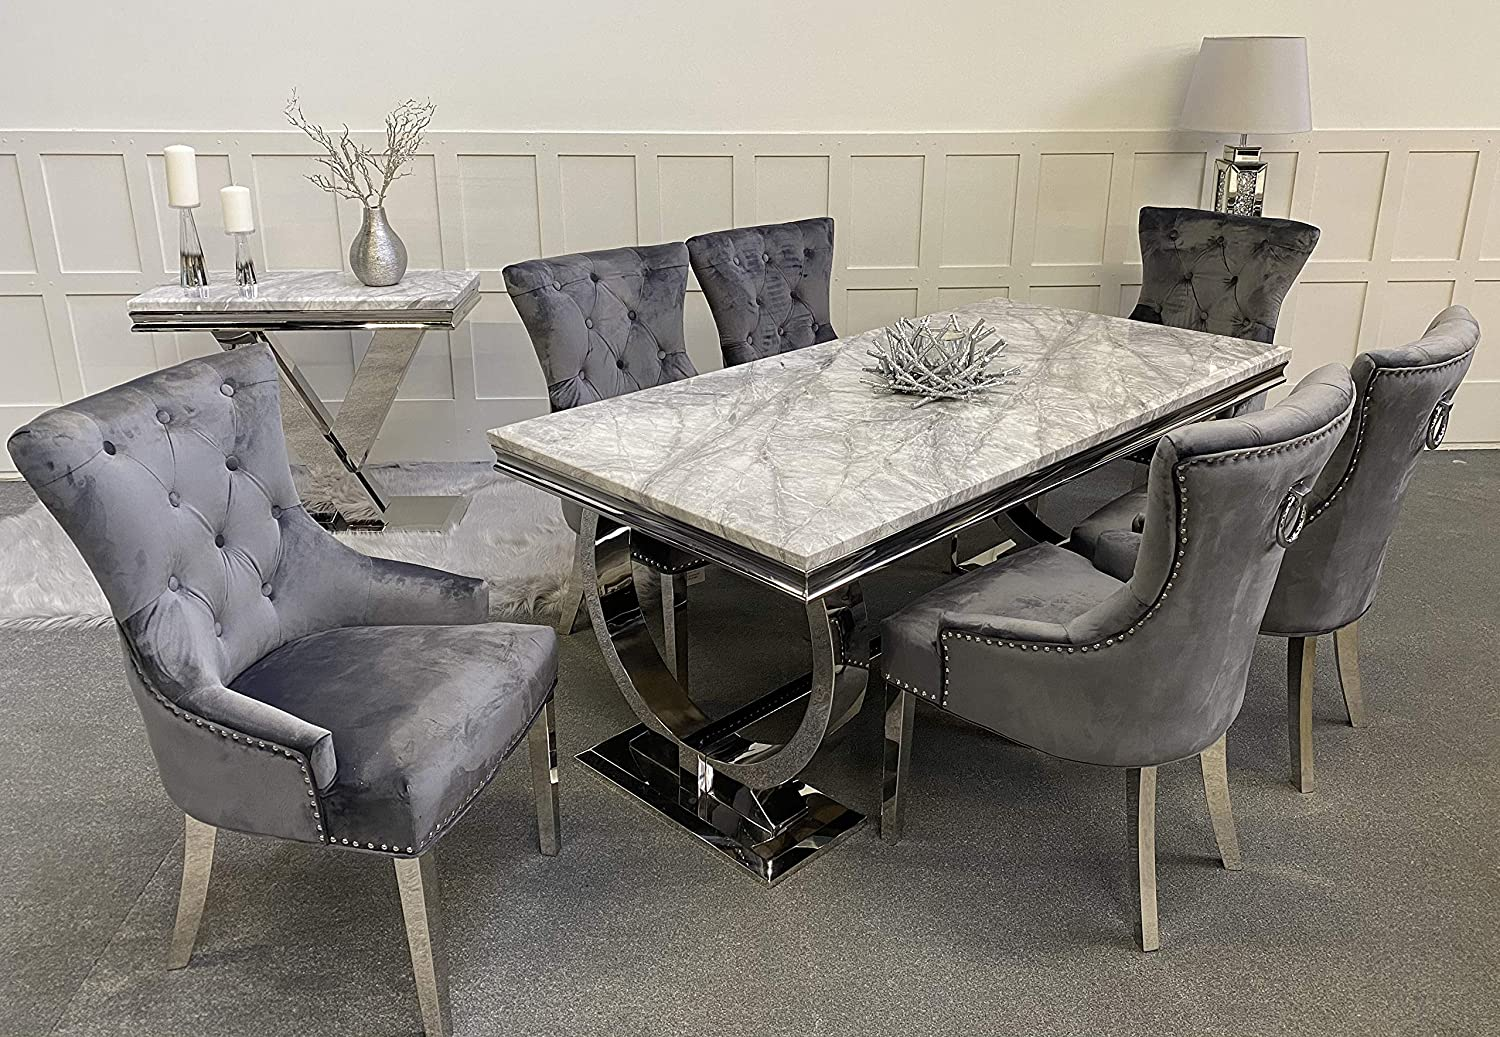 Schwarze Furniture Arianna Grey Marble Mirrored Dining Table and 6 Carlton Chairs  Set: Amazon.co.uk: Kitchen & Home